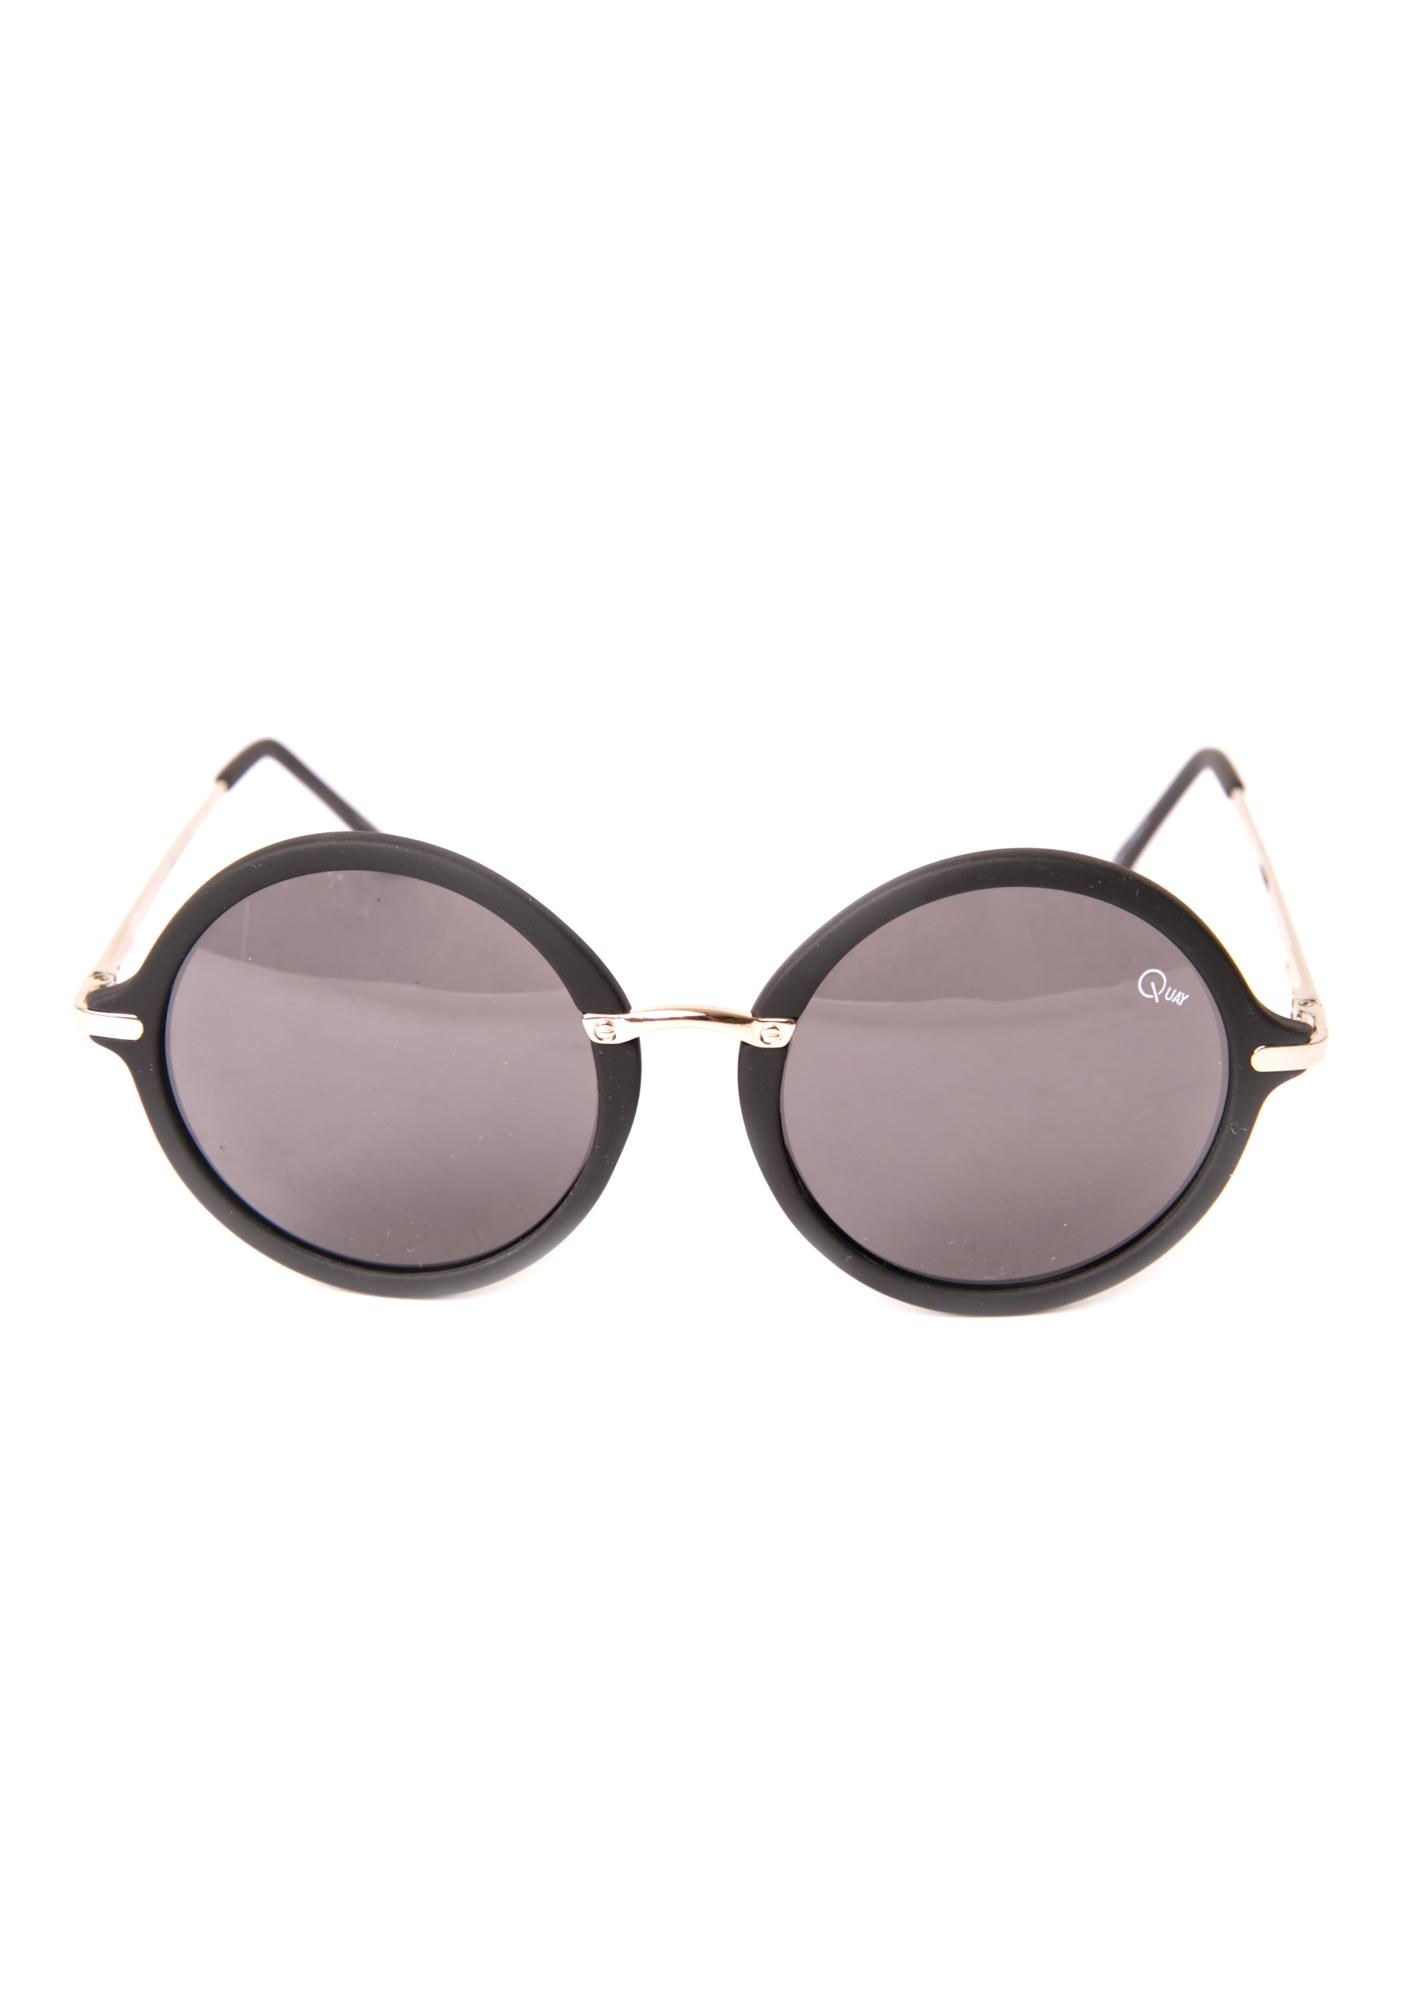 Quay Eyeware Misty Sunglasses